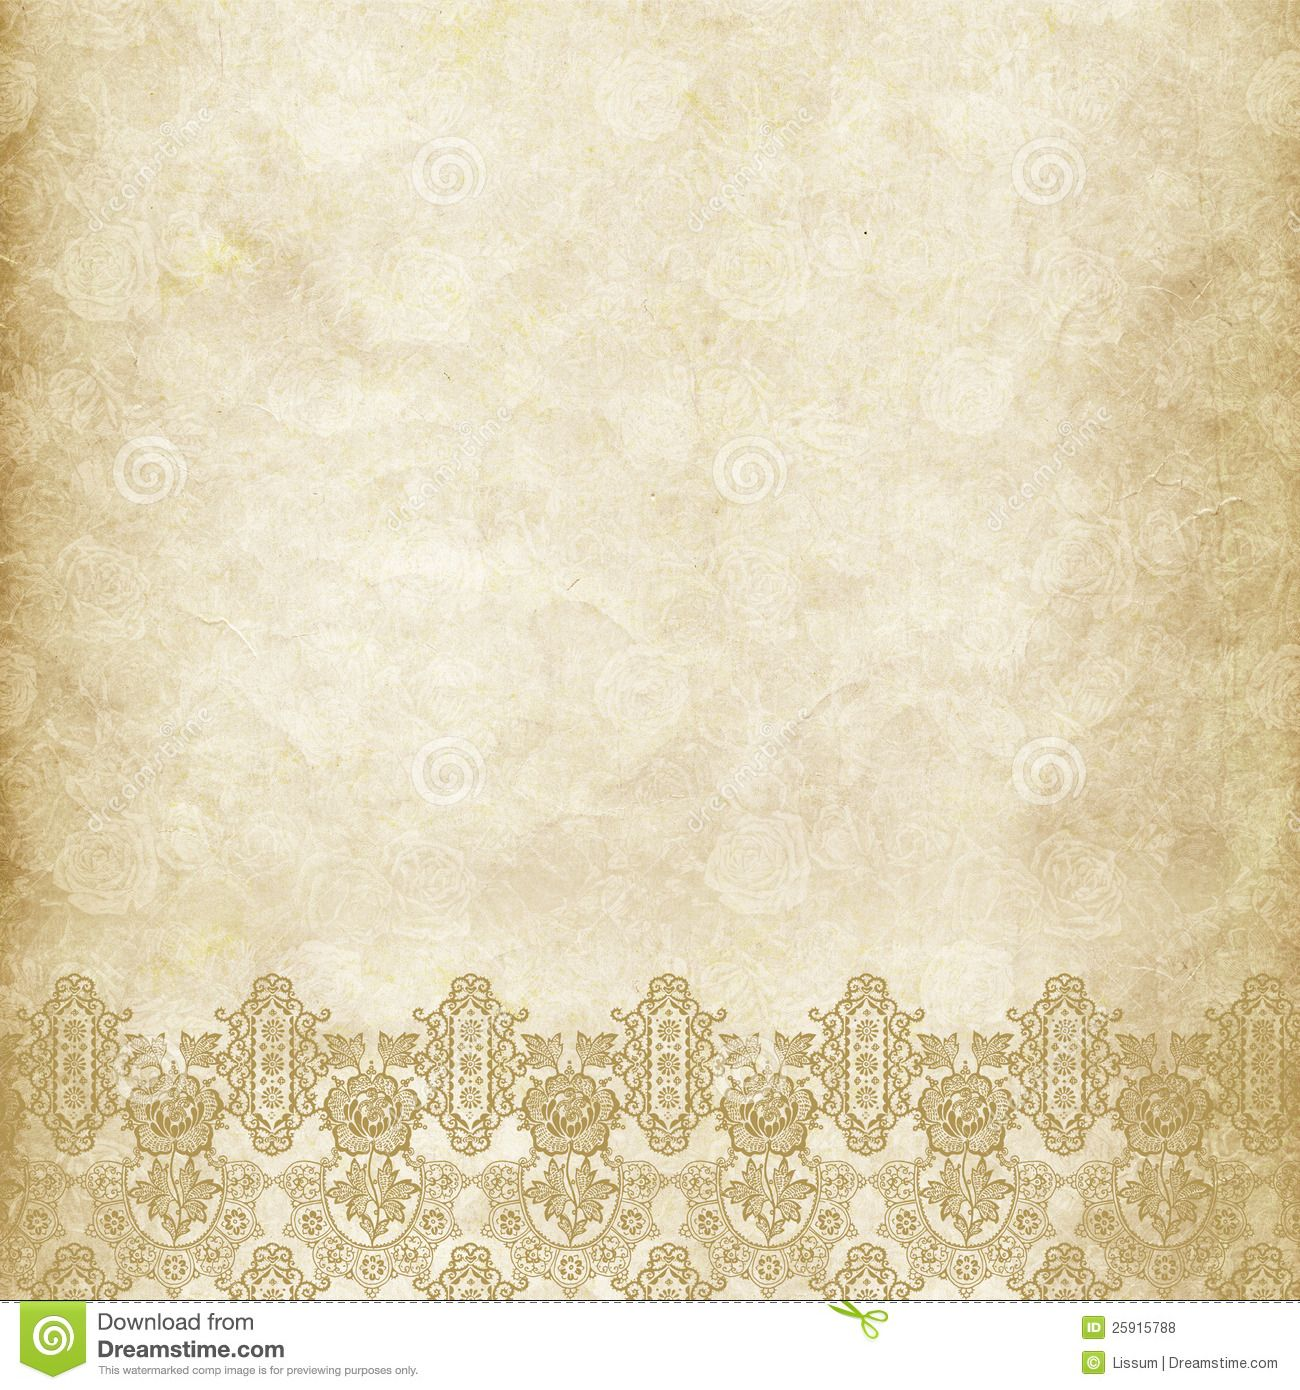 vintage backgrounds | beautiful vintage scrapbook background with a